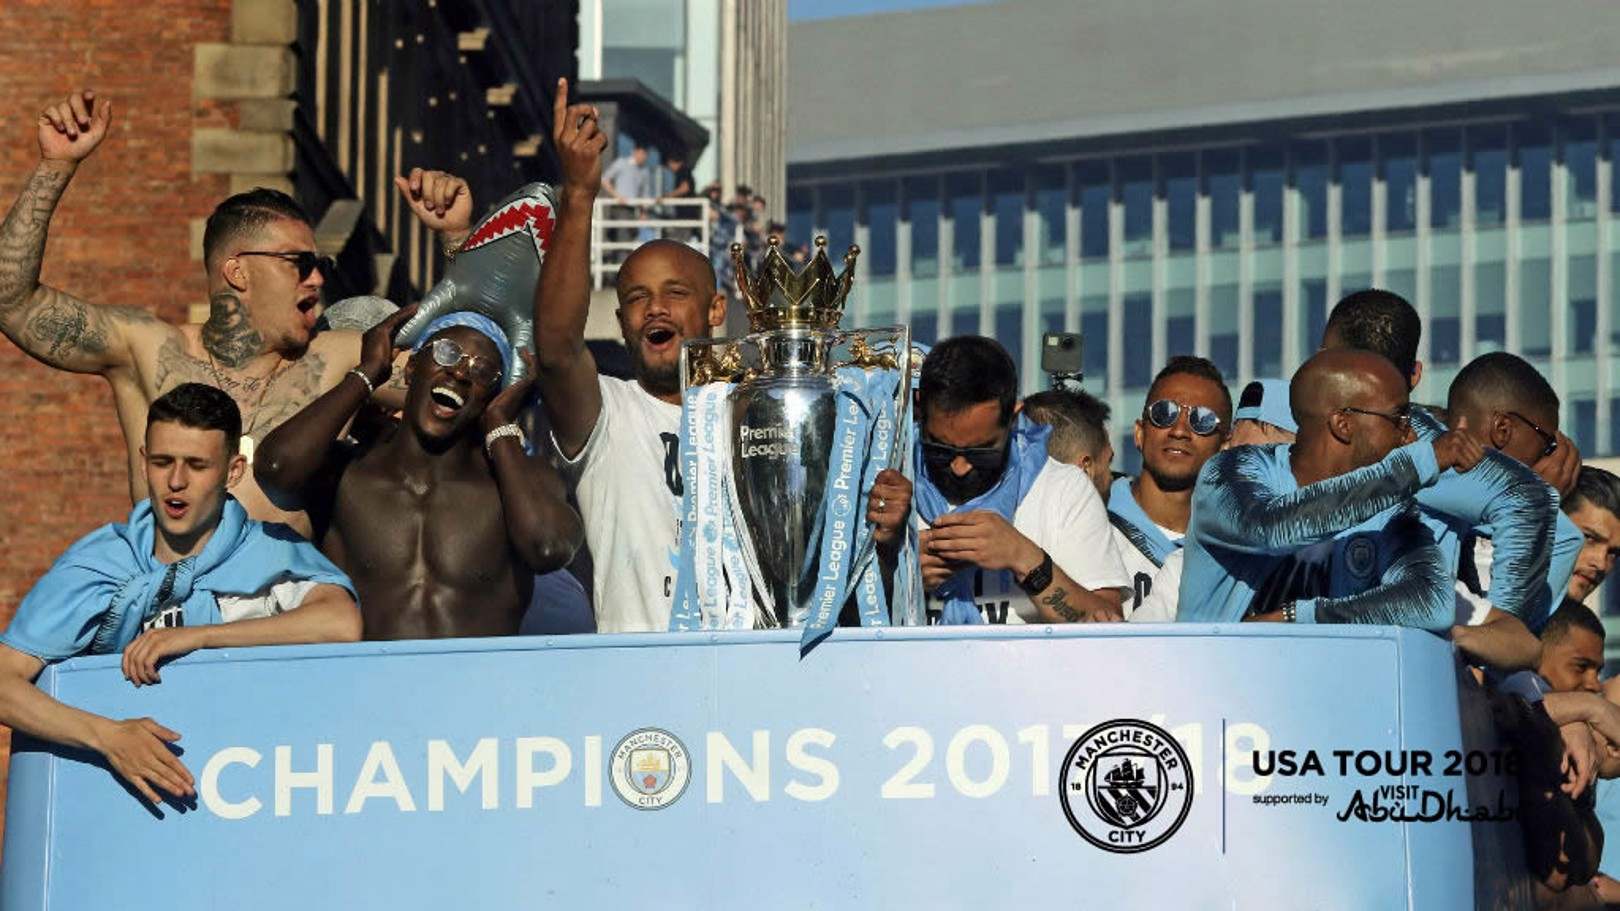 Man City silverware on show in Chicago!